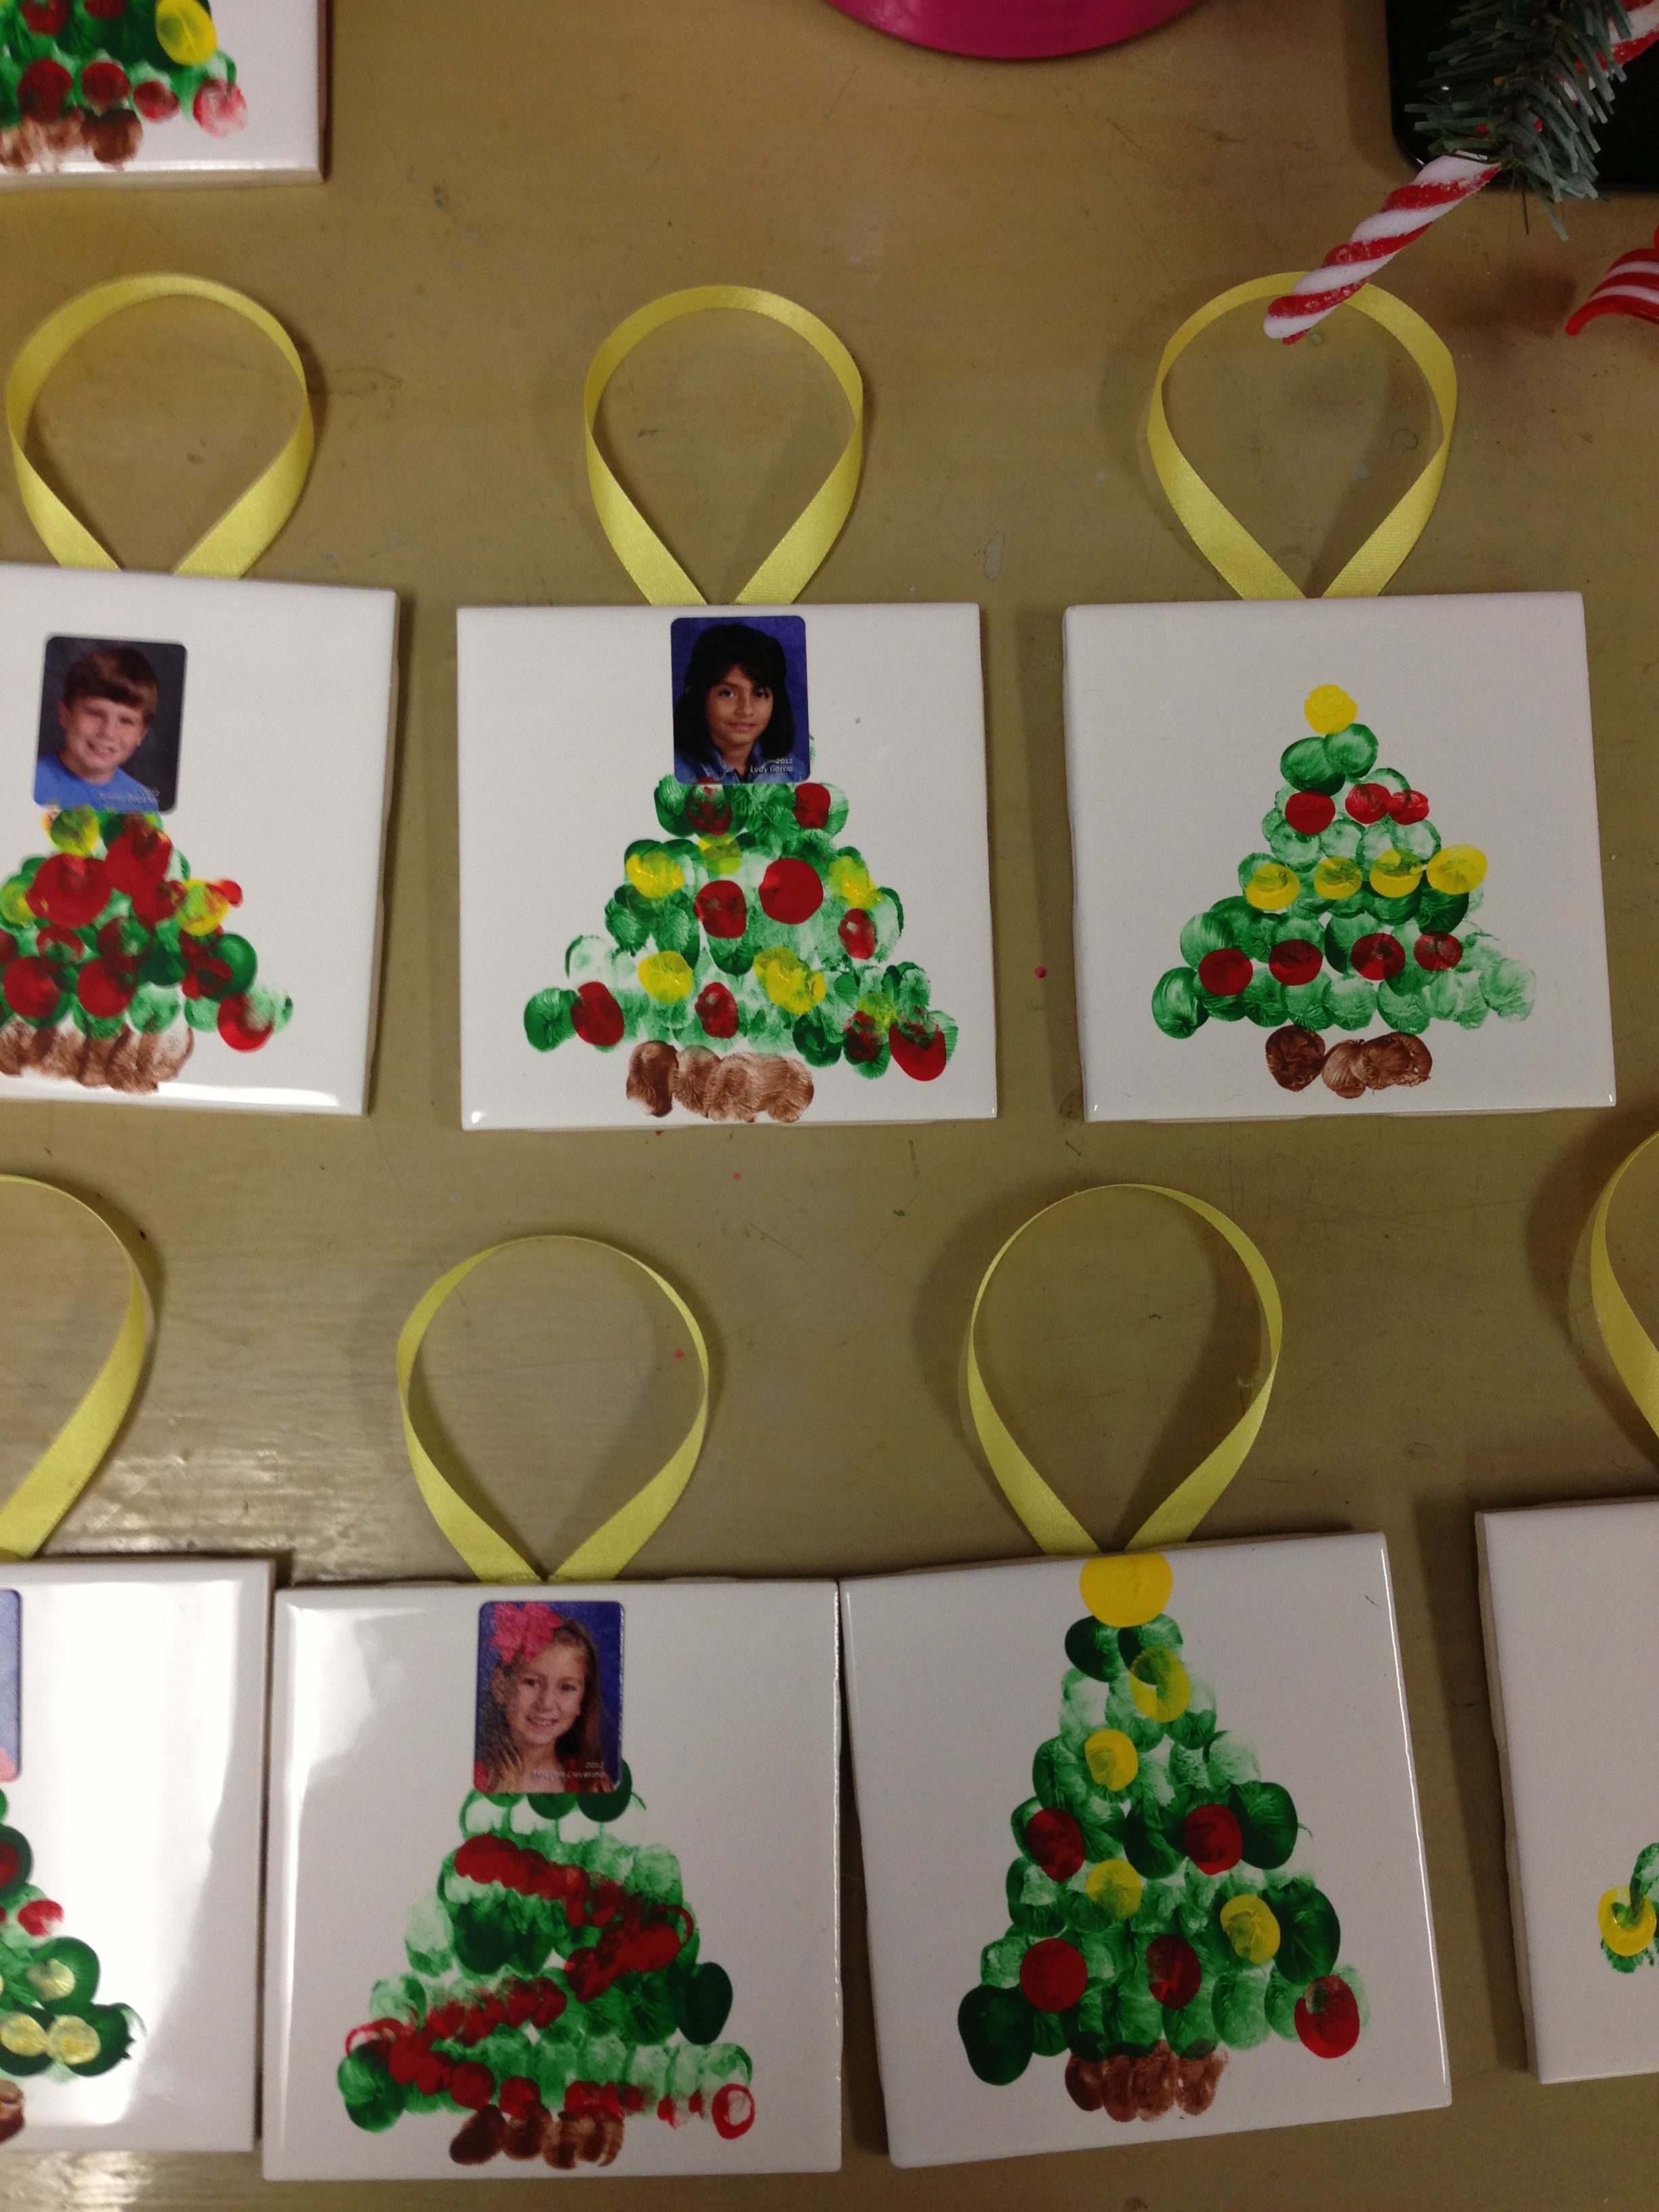 Cute Easy Ornaments To Do With Students Tiles 60 At Lowes And Home Depot Childrens Christmas Crafts Preschool Christmas Christmas Ornaments Homemade